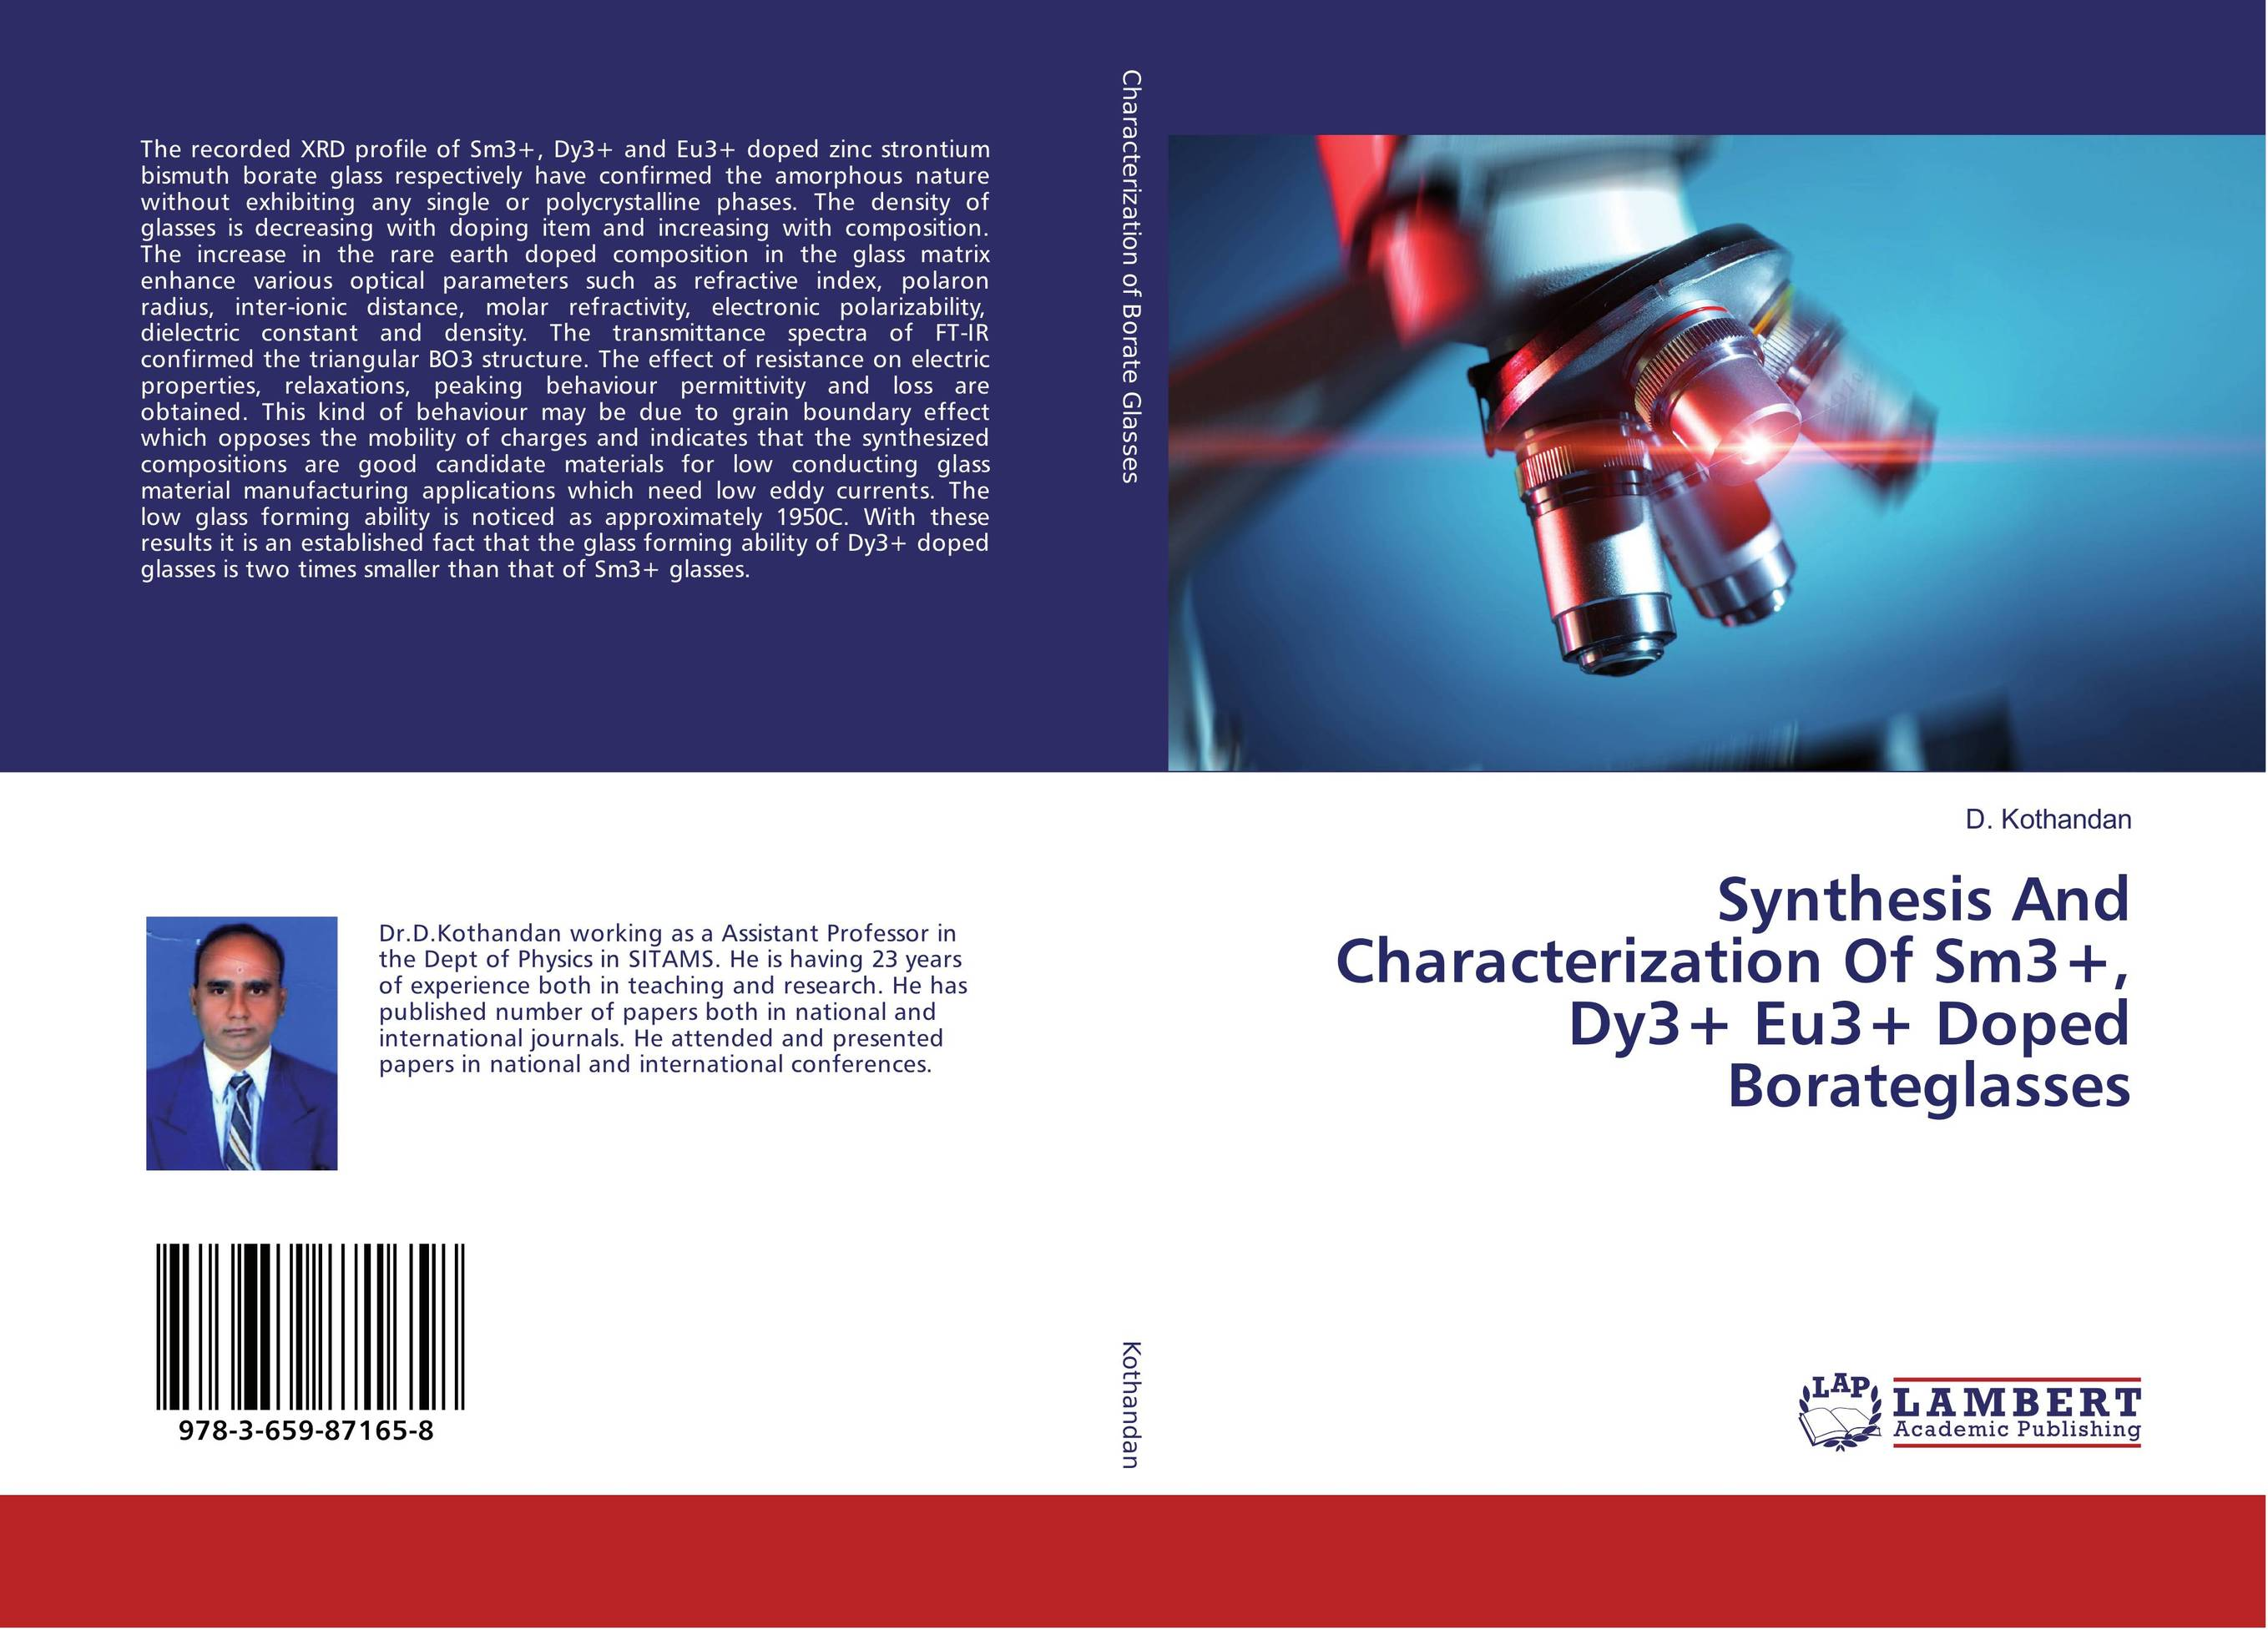 Synthesis And Characterization Of Sm3+, Dy3+ Eu3+ Doped Borateglasses synthesis characterization and applications of nano cdha